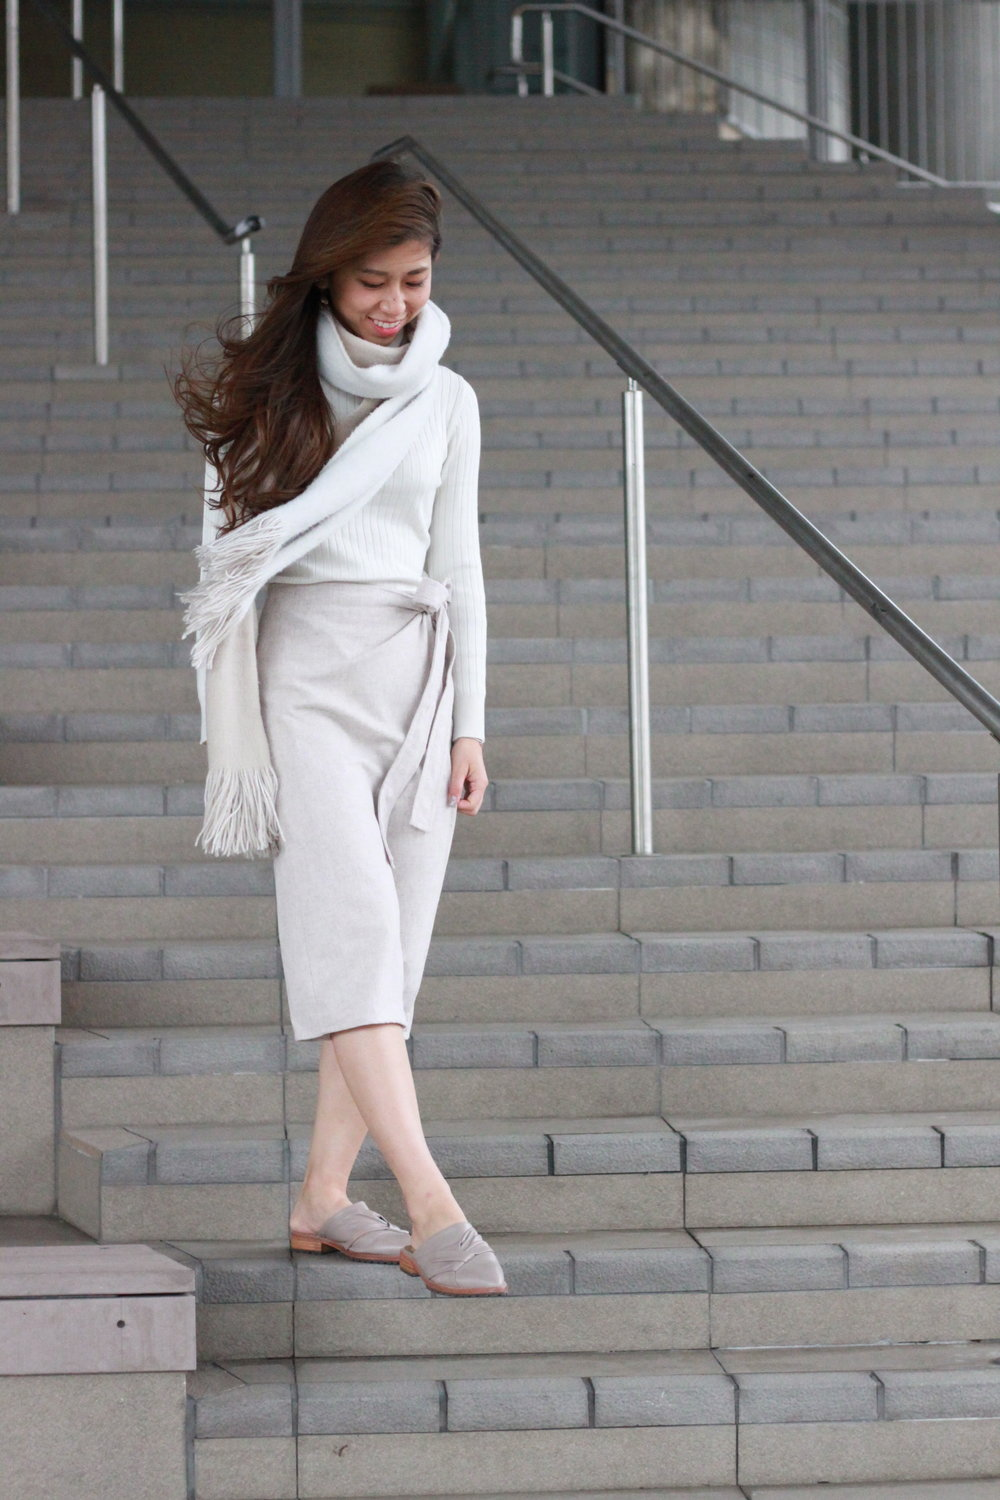 White turtleneck knit from Japan / b+ab salon skirt / Initial nude slides / Zara scarf